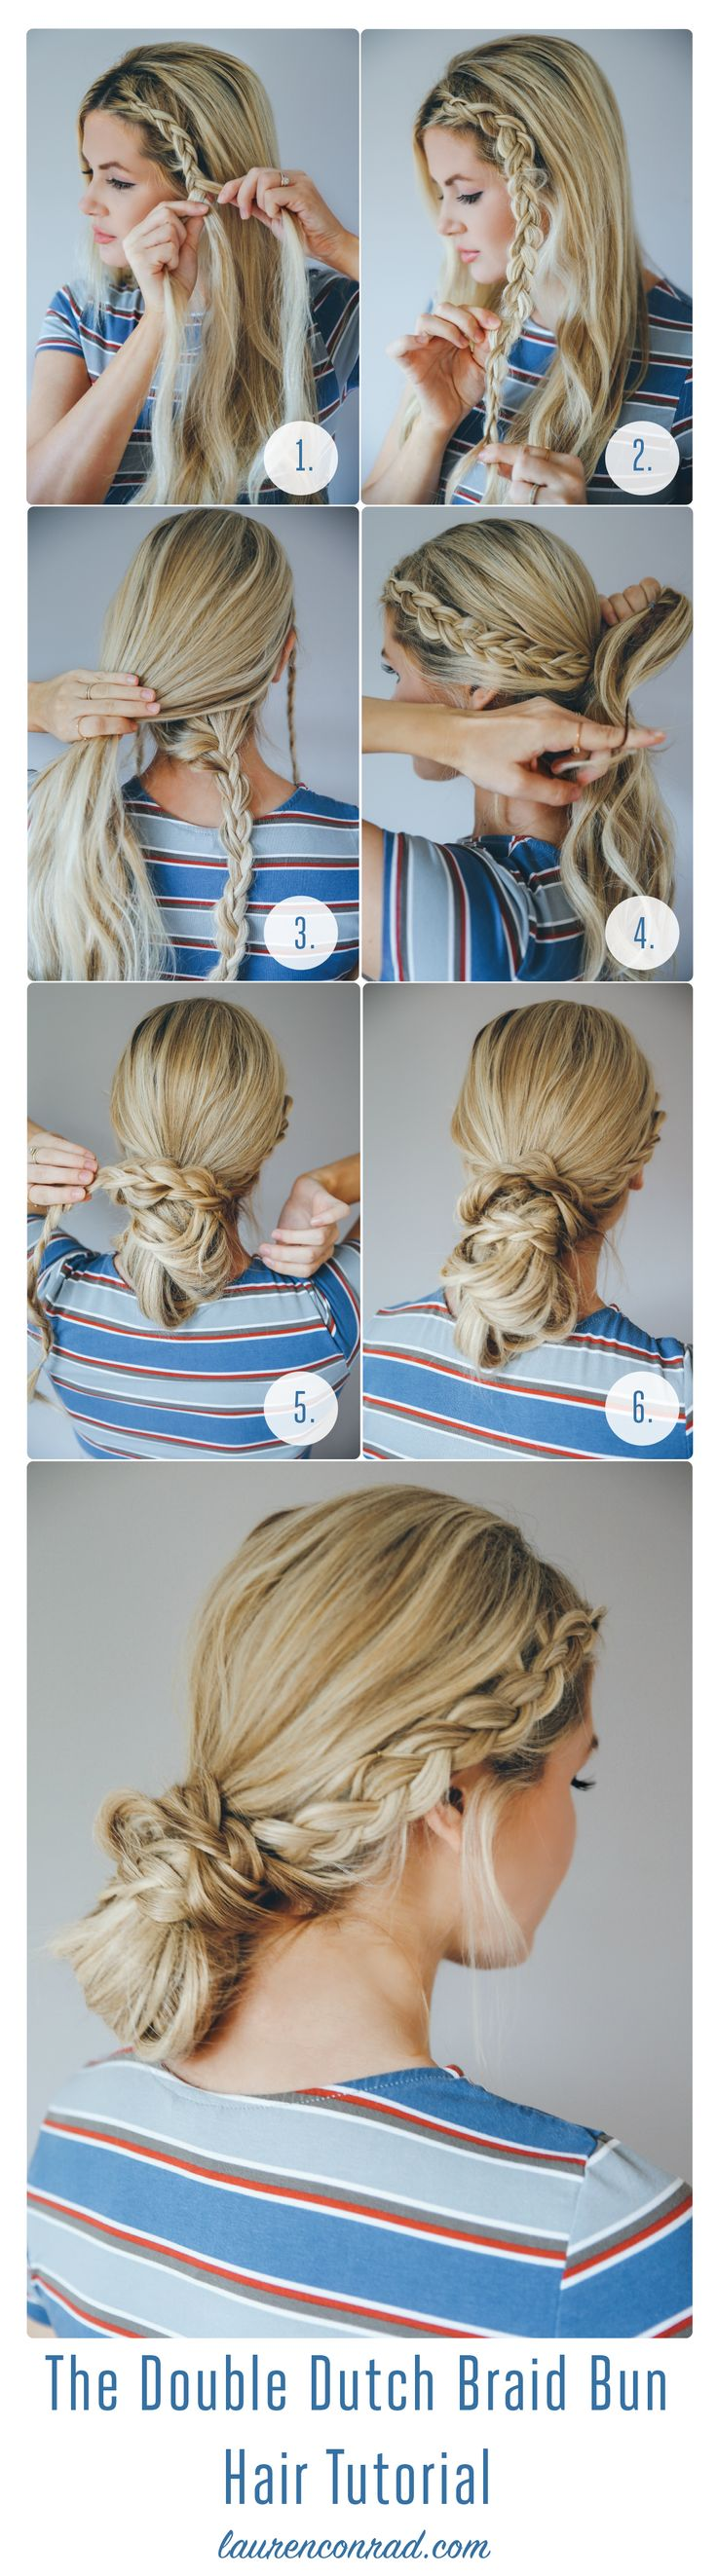 Swell 1000 Ideas About Easy Braided Hairstyles On Pinterest Types Of Short Hairstyles Gunalazisus